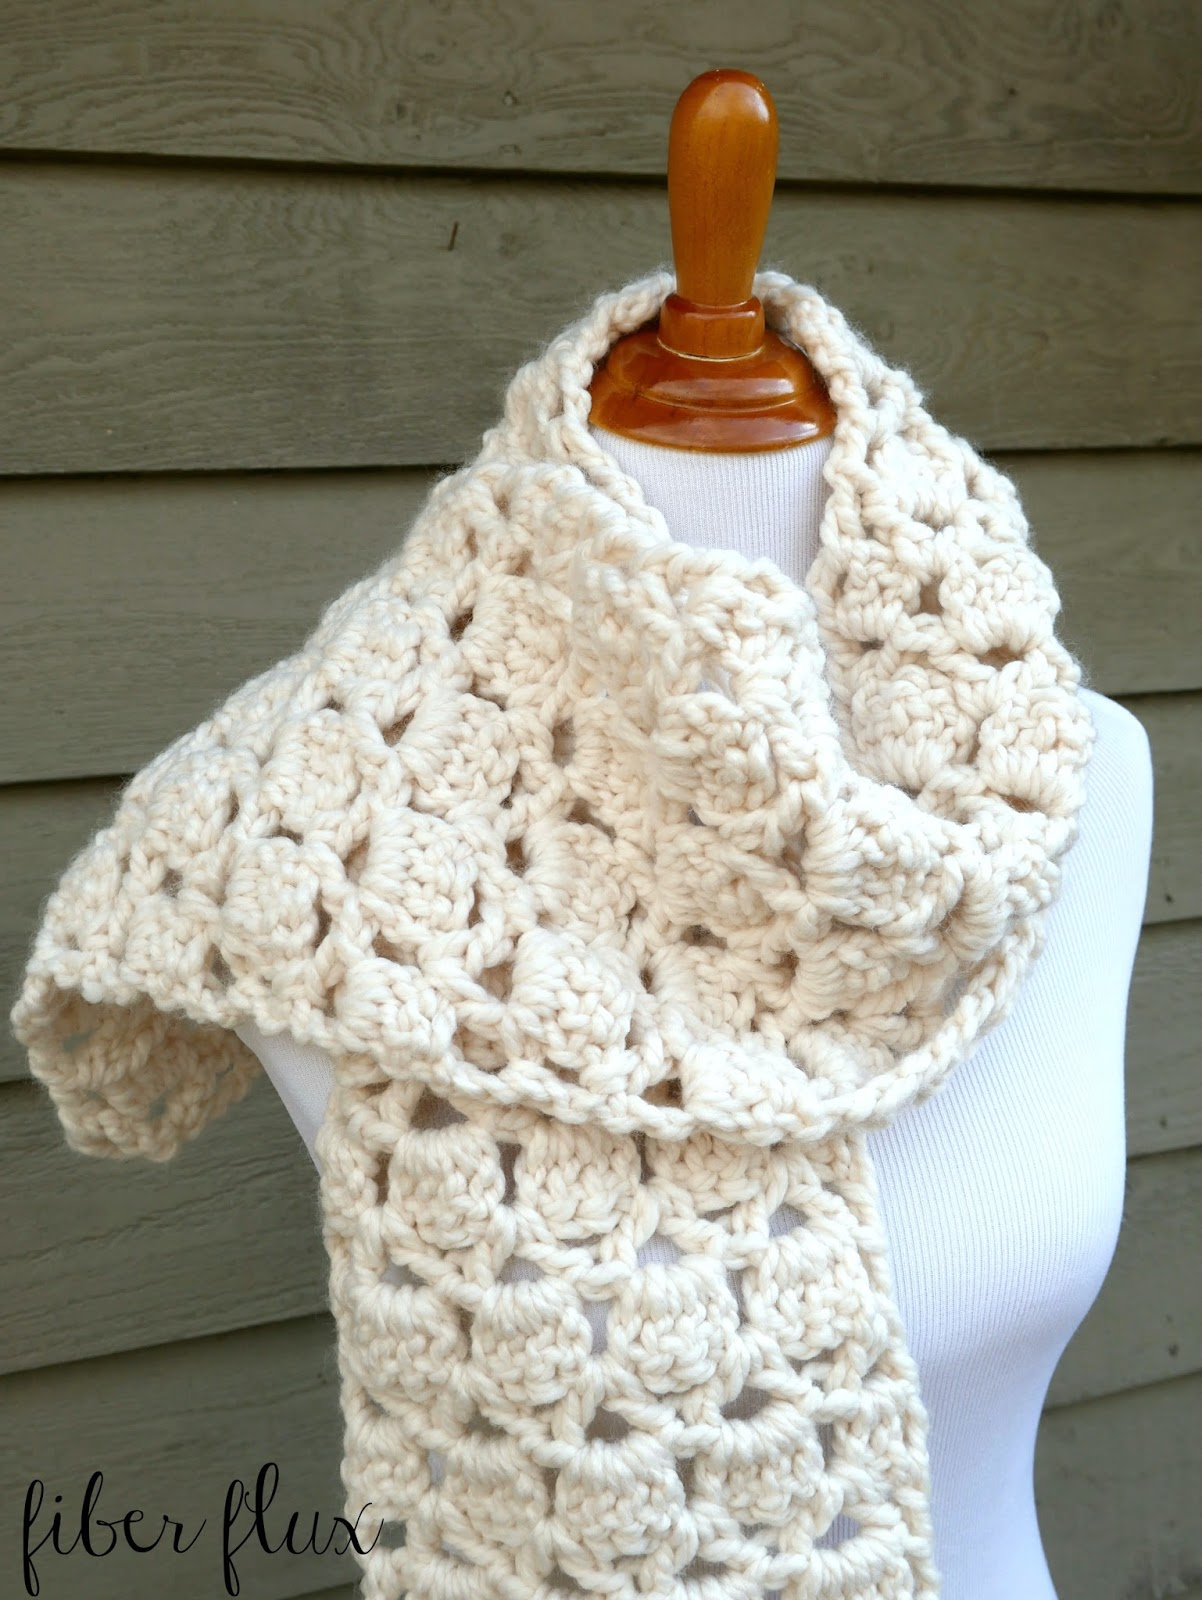 Crochet Patterns Super Bulky Yarn : Fiber Flux: Free Crochet Pattern...Sugar Cookie Scarf!